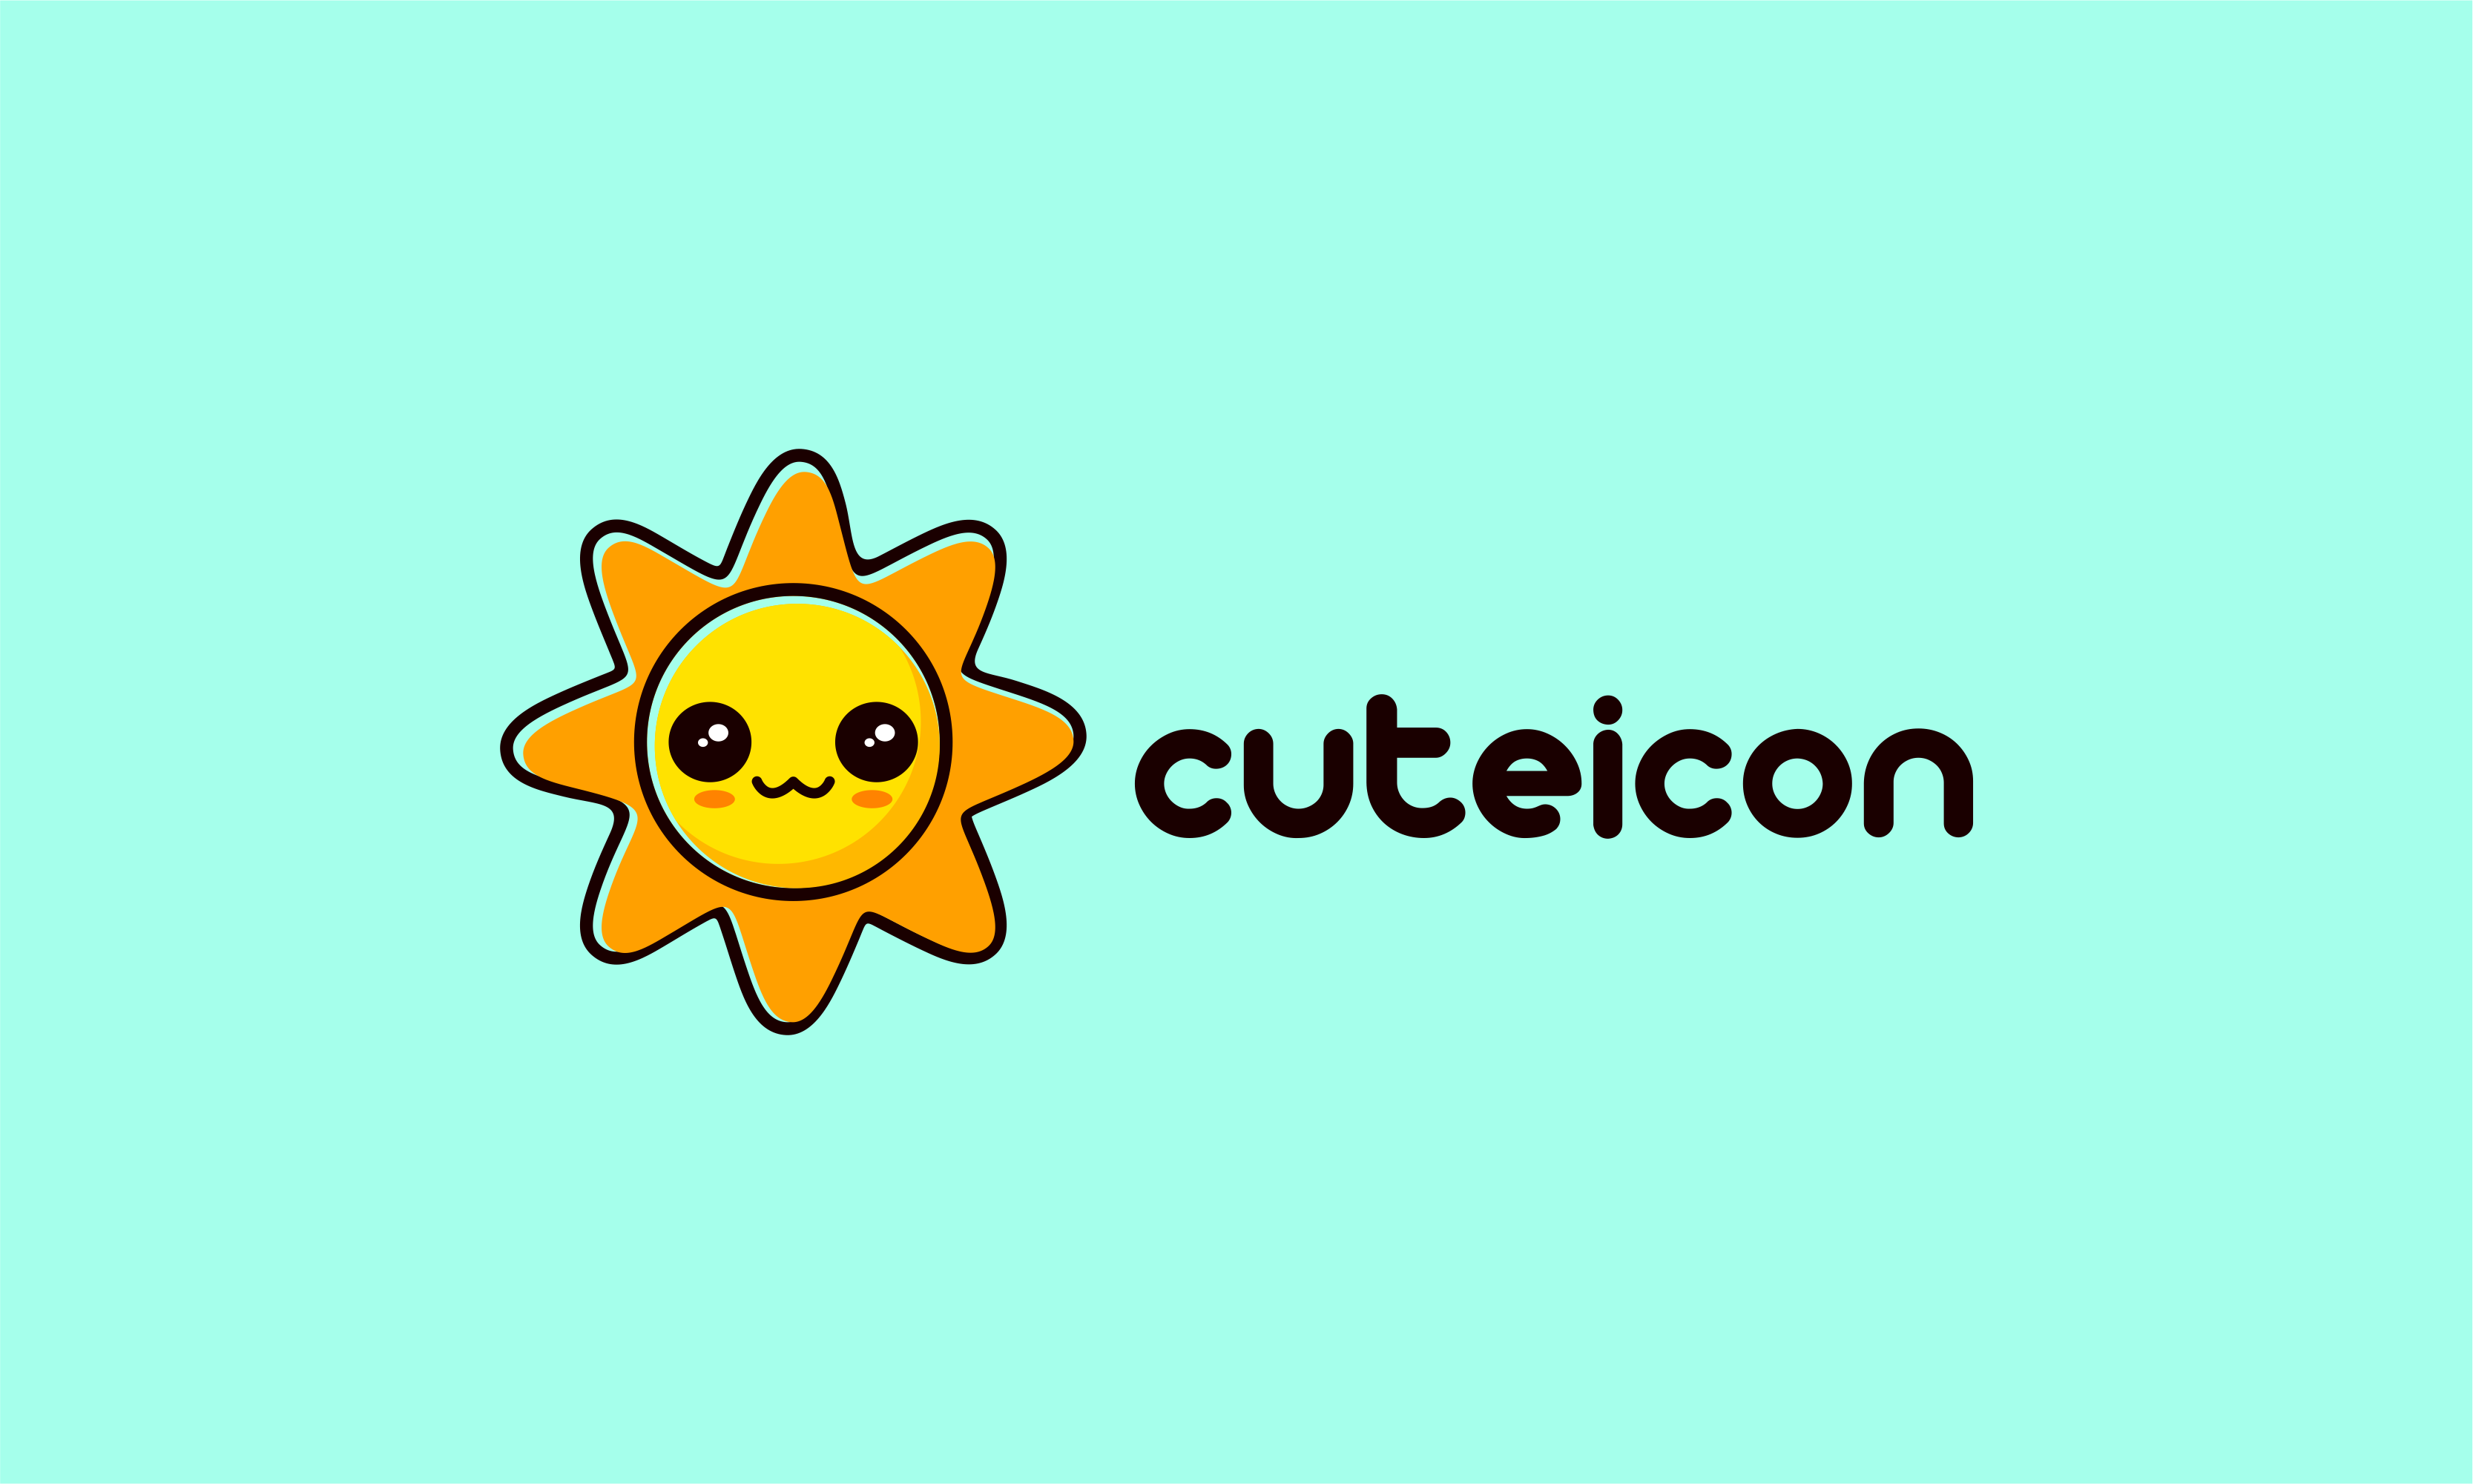 Cuteicon